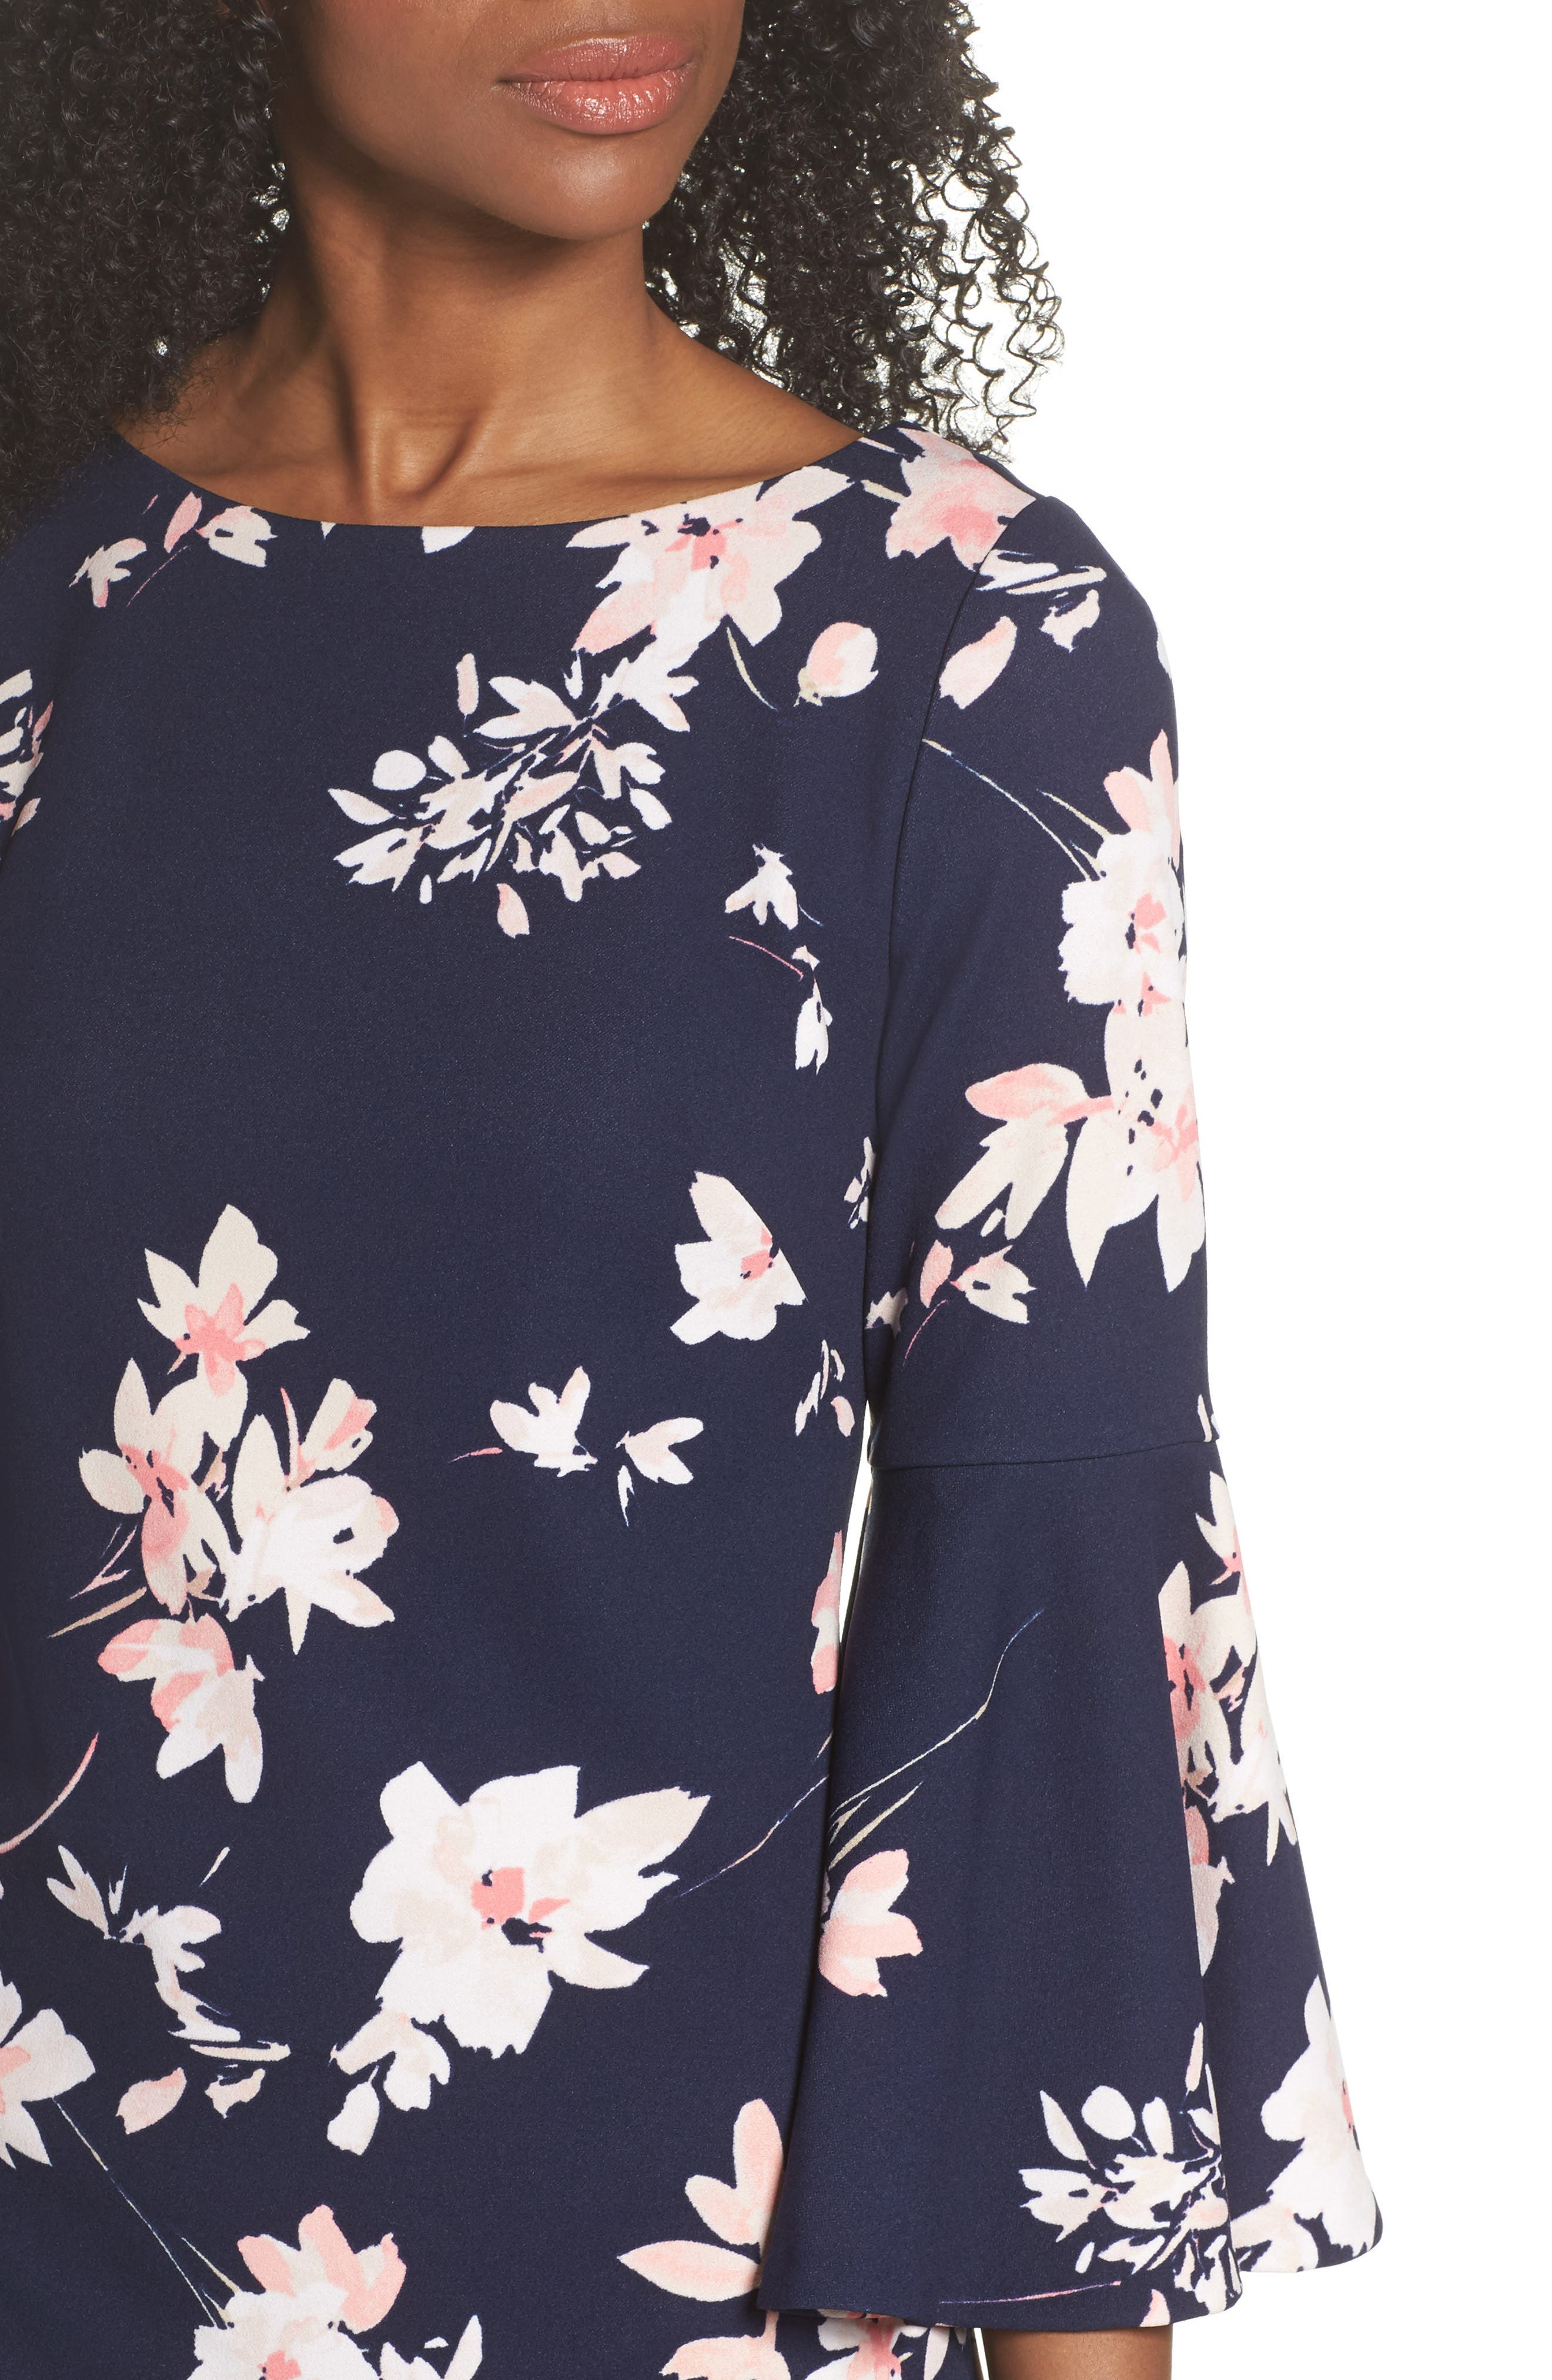 ELIZA J,                             Floral Bell Sleeve Dress,                             Alternate thumbnail 4, color,                             NAVY/PINK